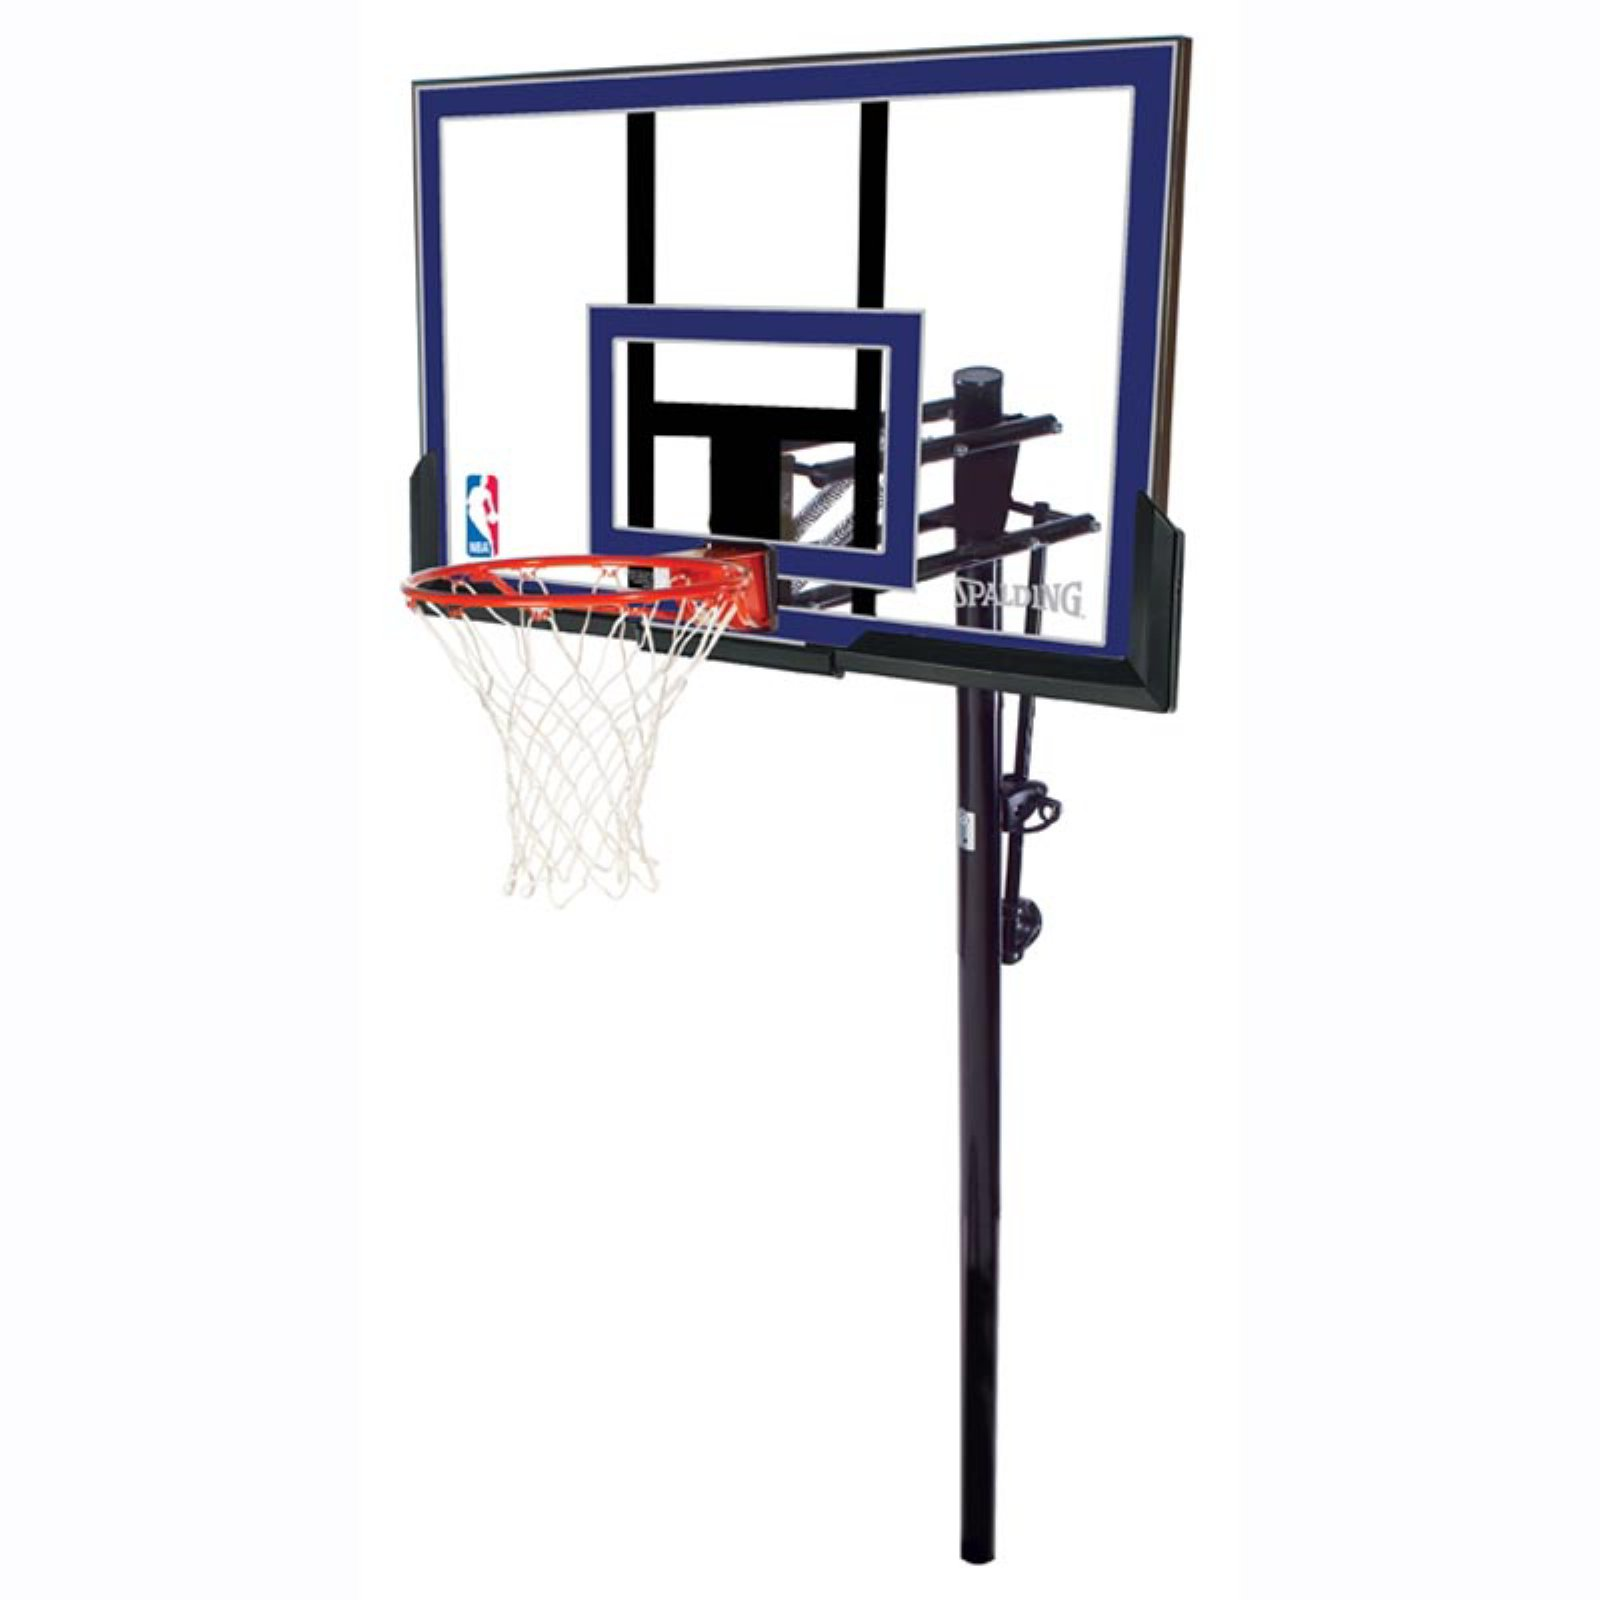 "Spalding NBA 50"" Acrylic Exactaheight In-Ground Hoop System"